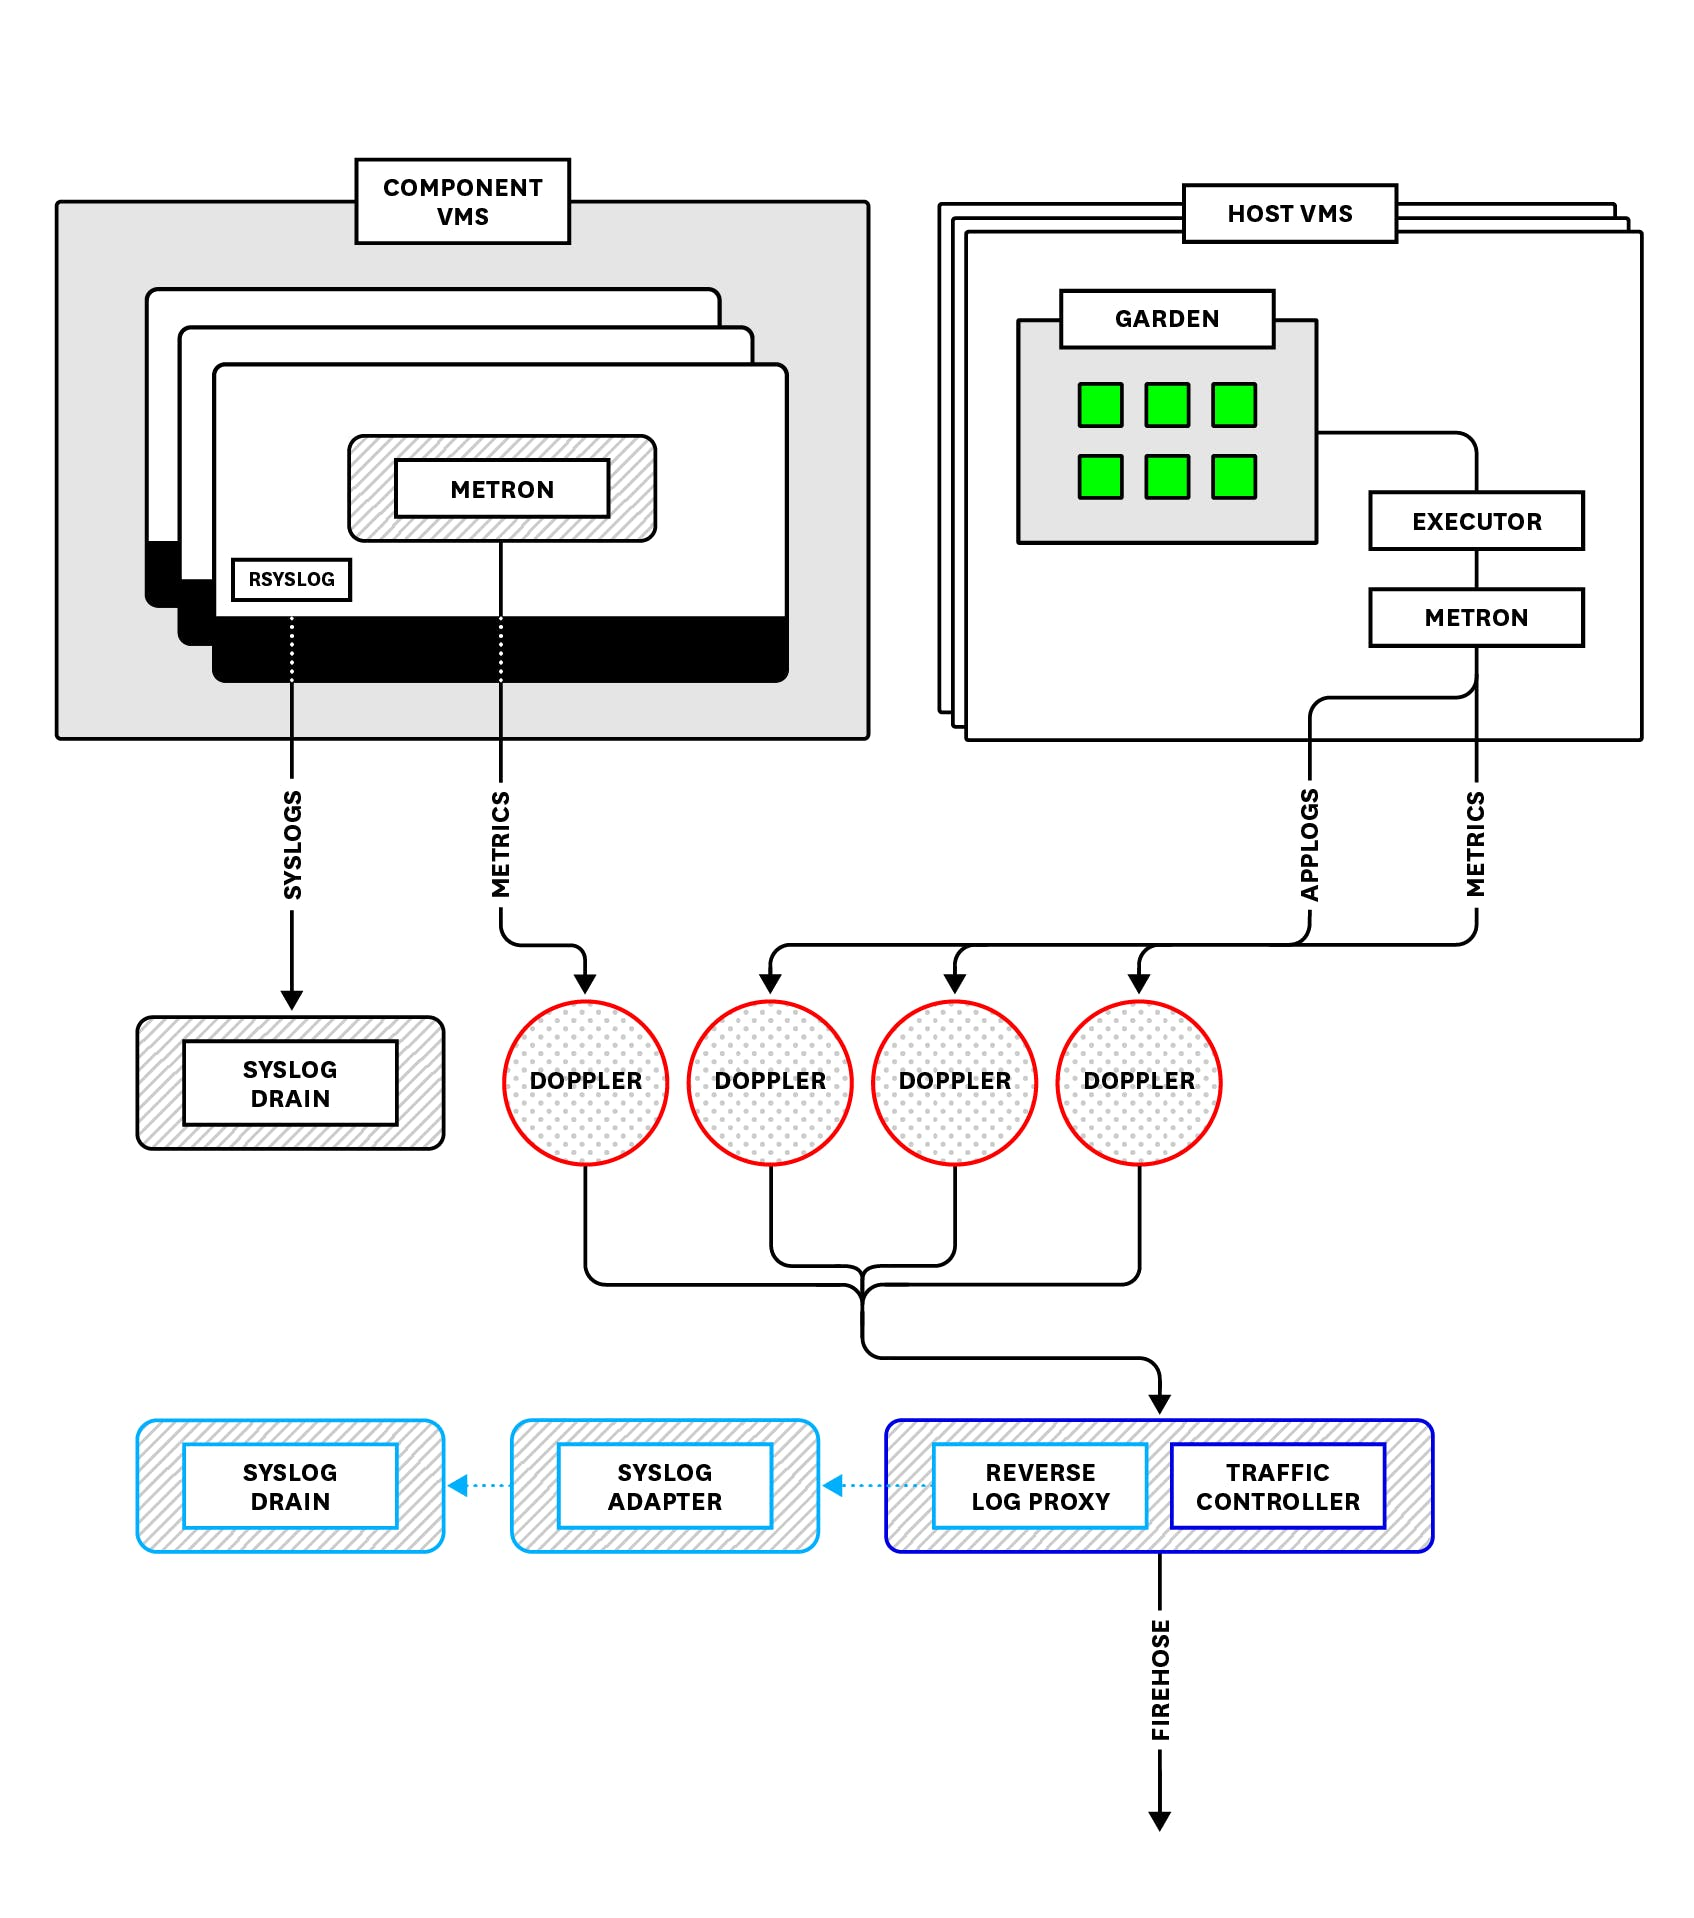 an overview of how pcf aggregates and streams application logs application and component metrics and system logs  [ 1694 x 1918 Pixel ]